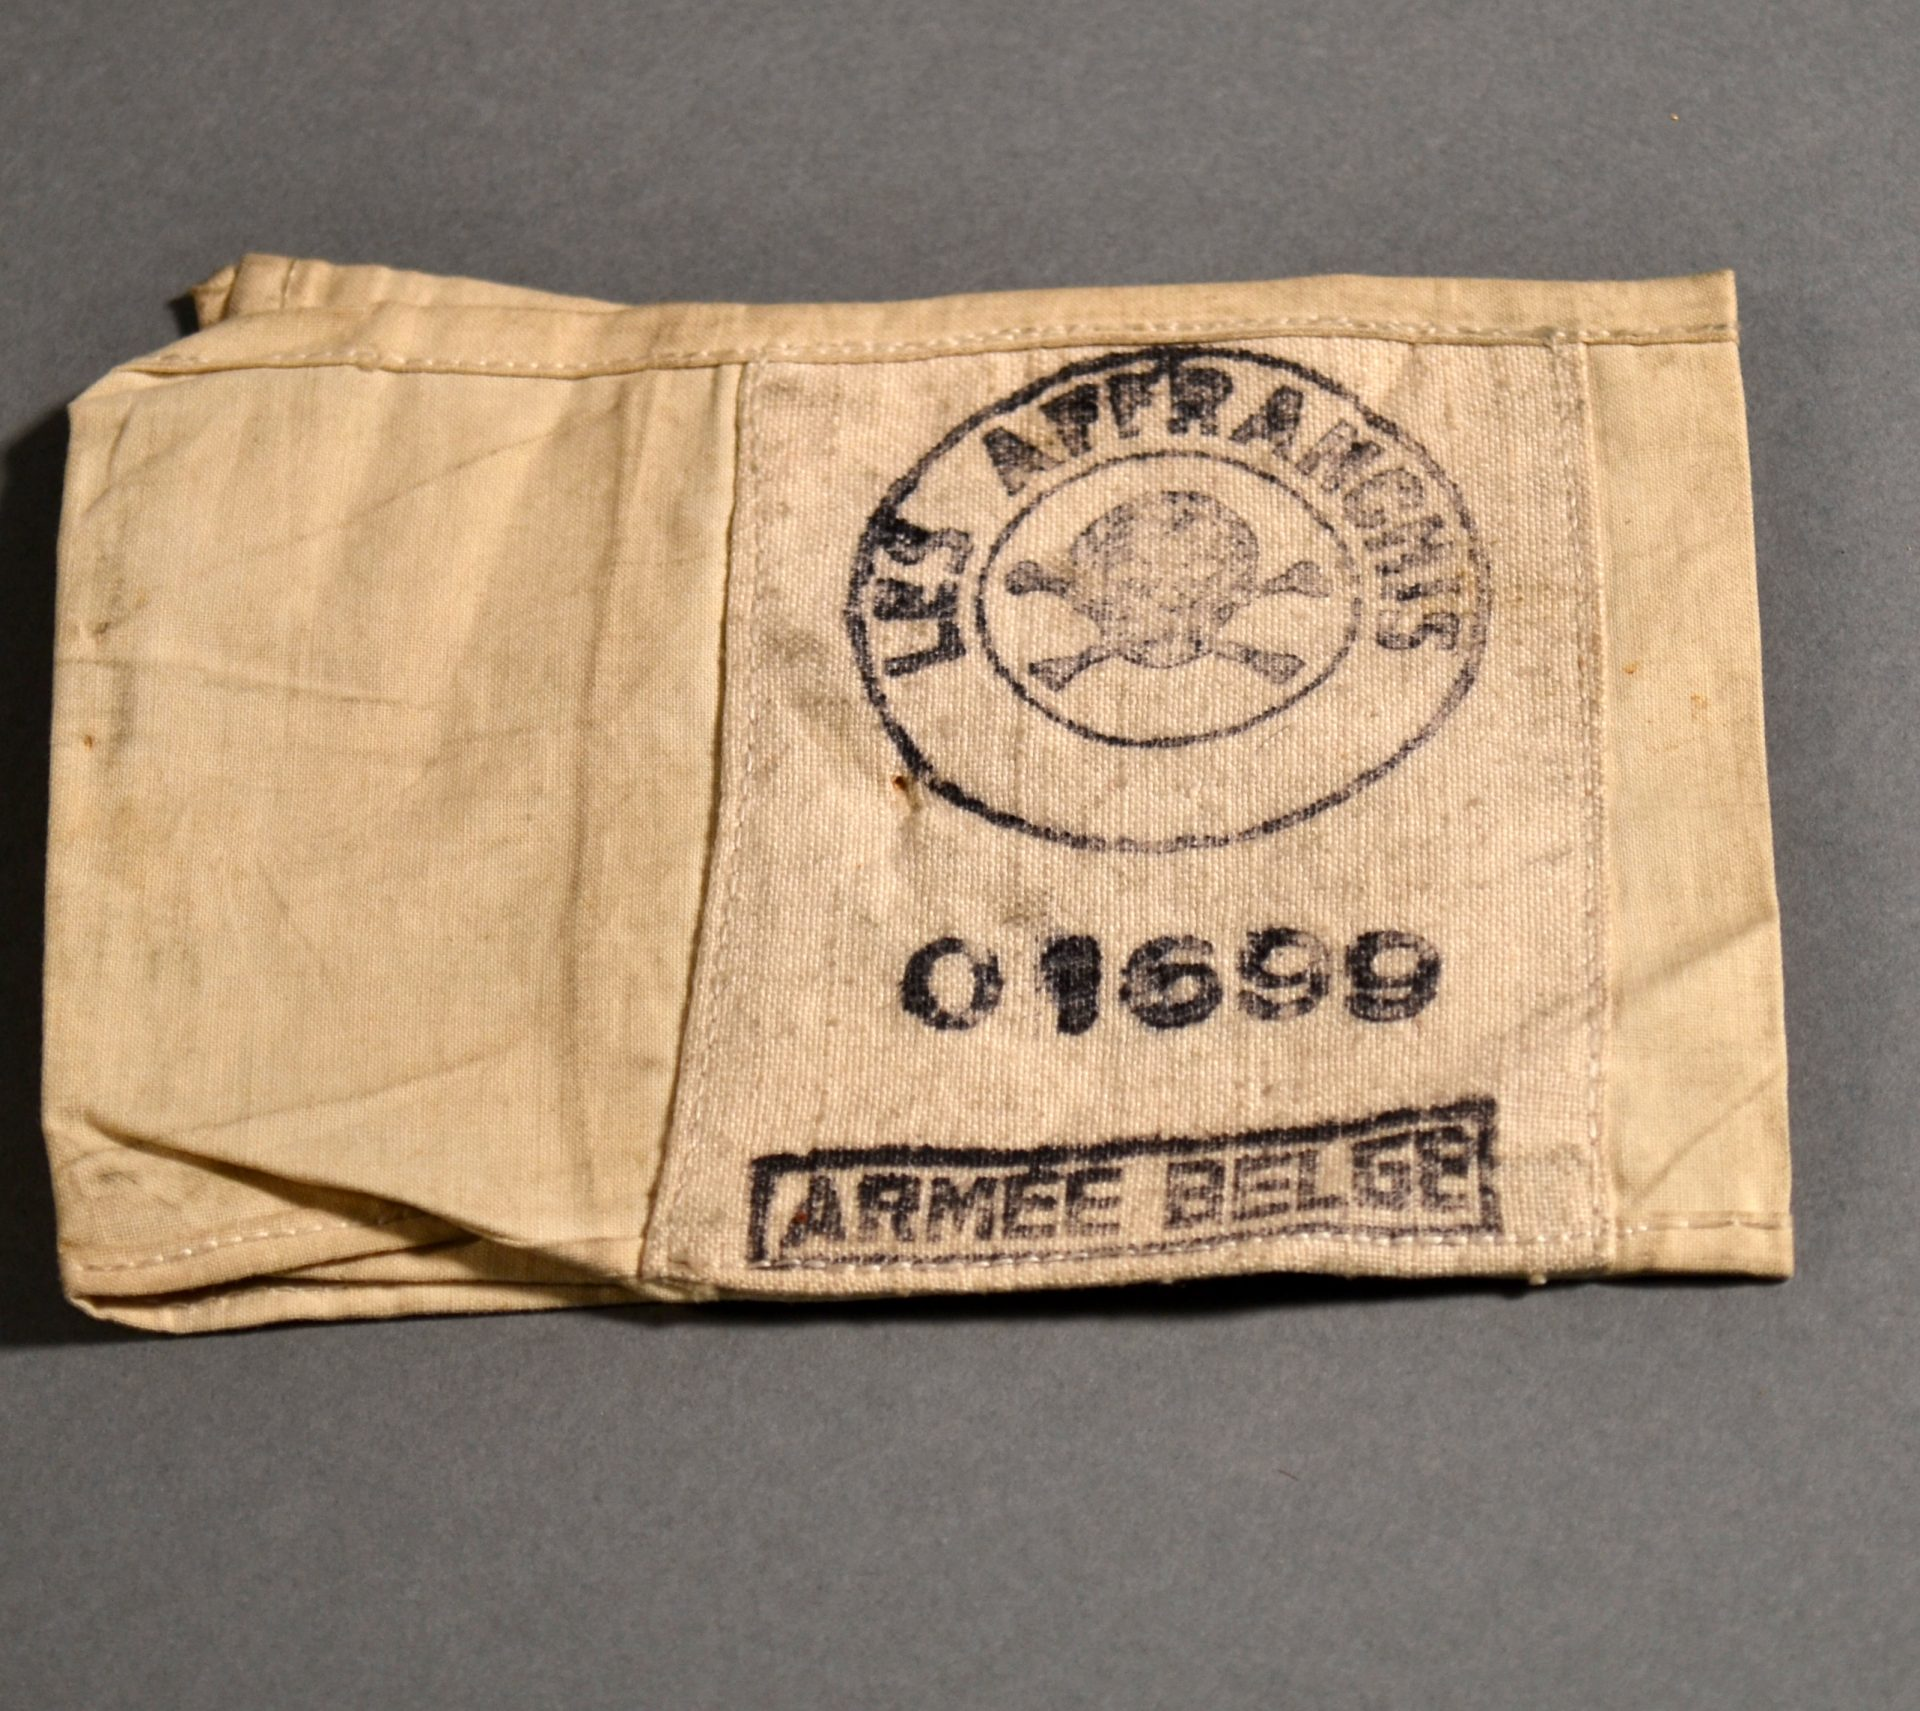 This armband has his membership number 01699 printed on it with the group's logo.